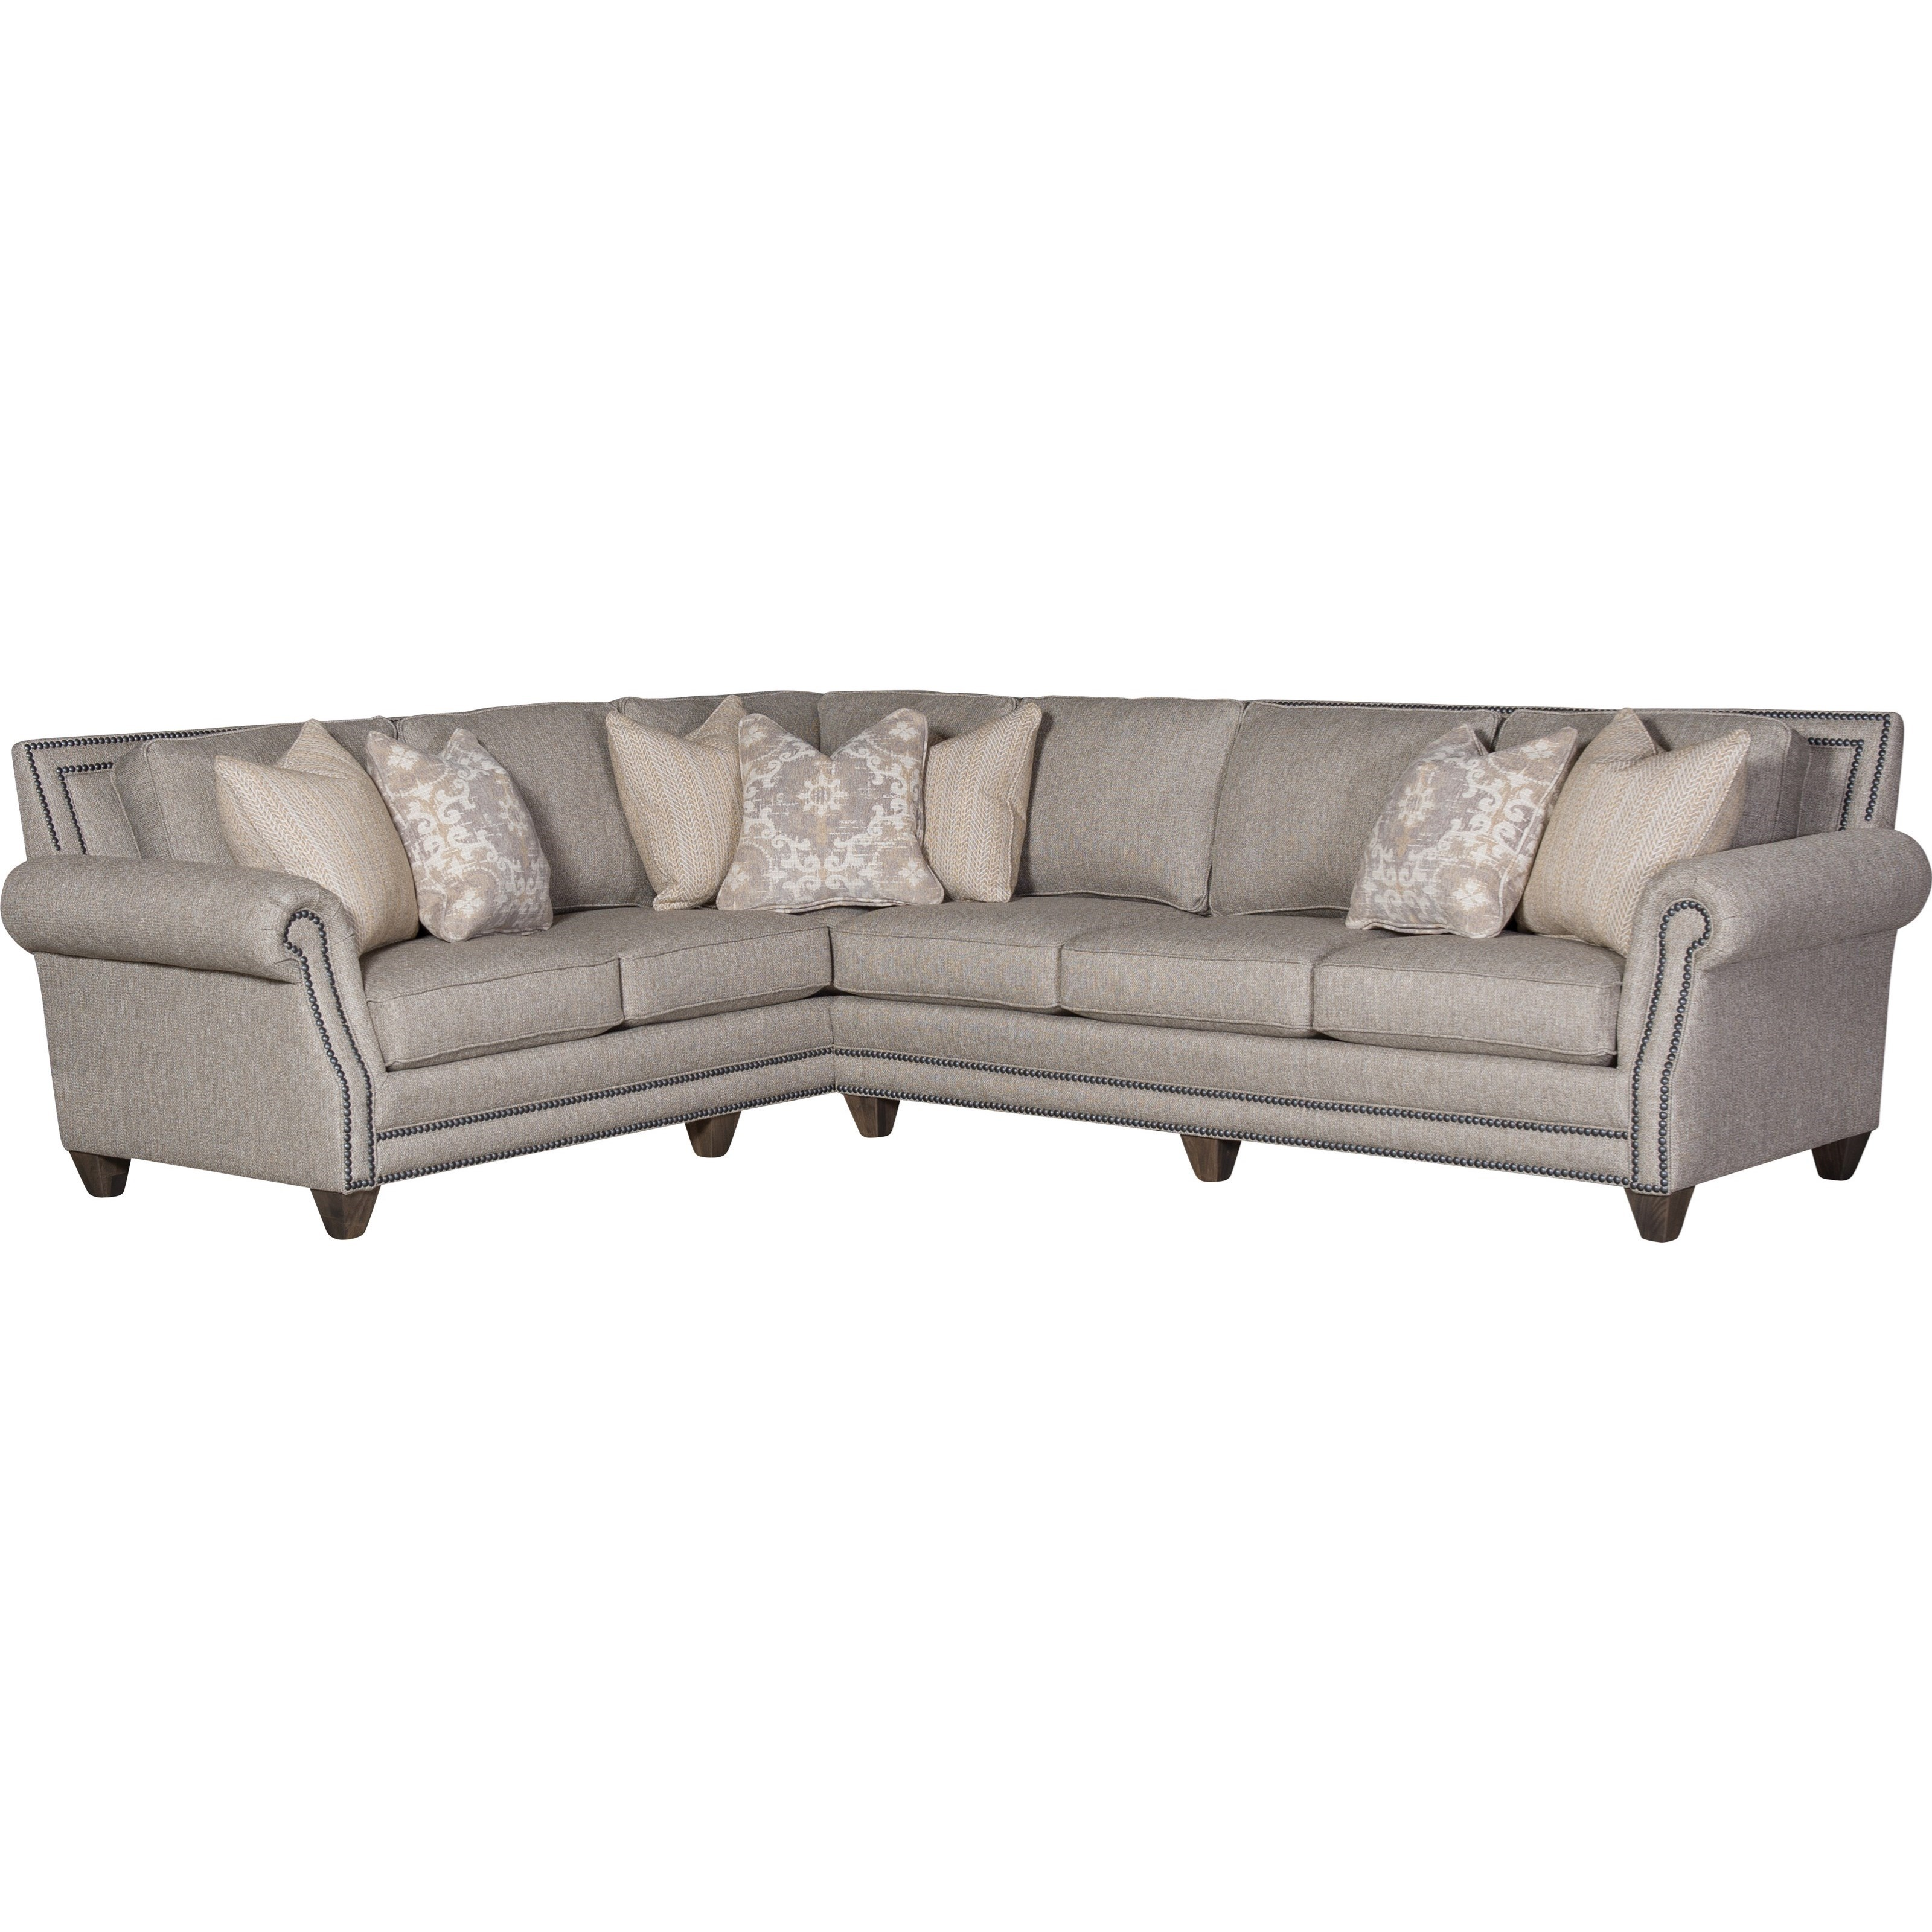 Mayo 9000 2-Piece Sectional with LAF Corner Sofa | Howell Furniture ...